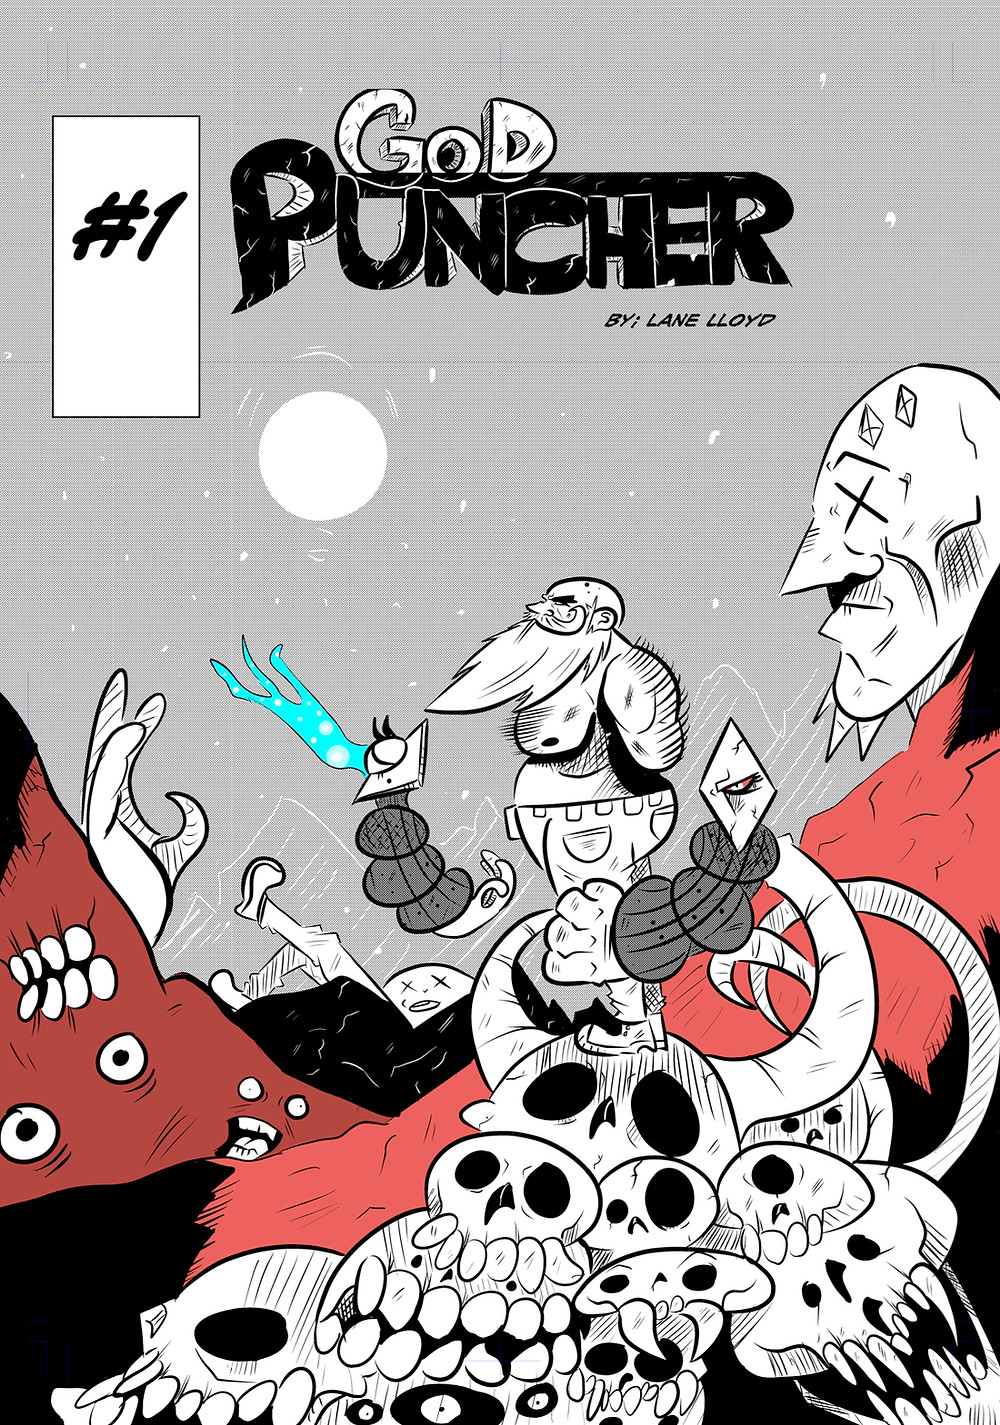 God Puncher, issue #1, cover, self-published, Lane Lloyd